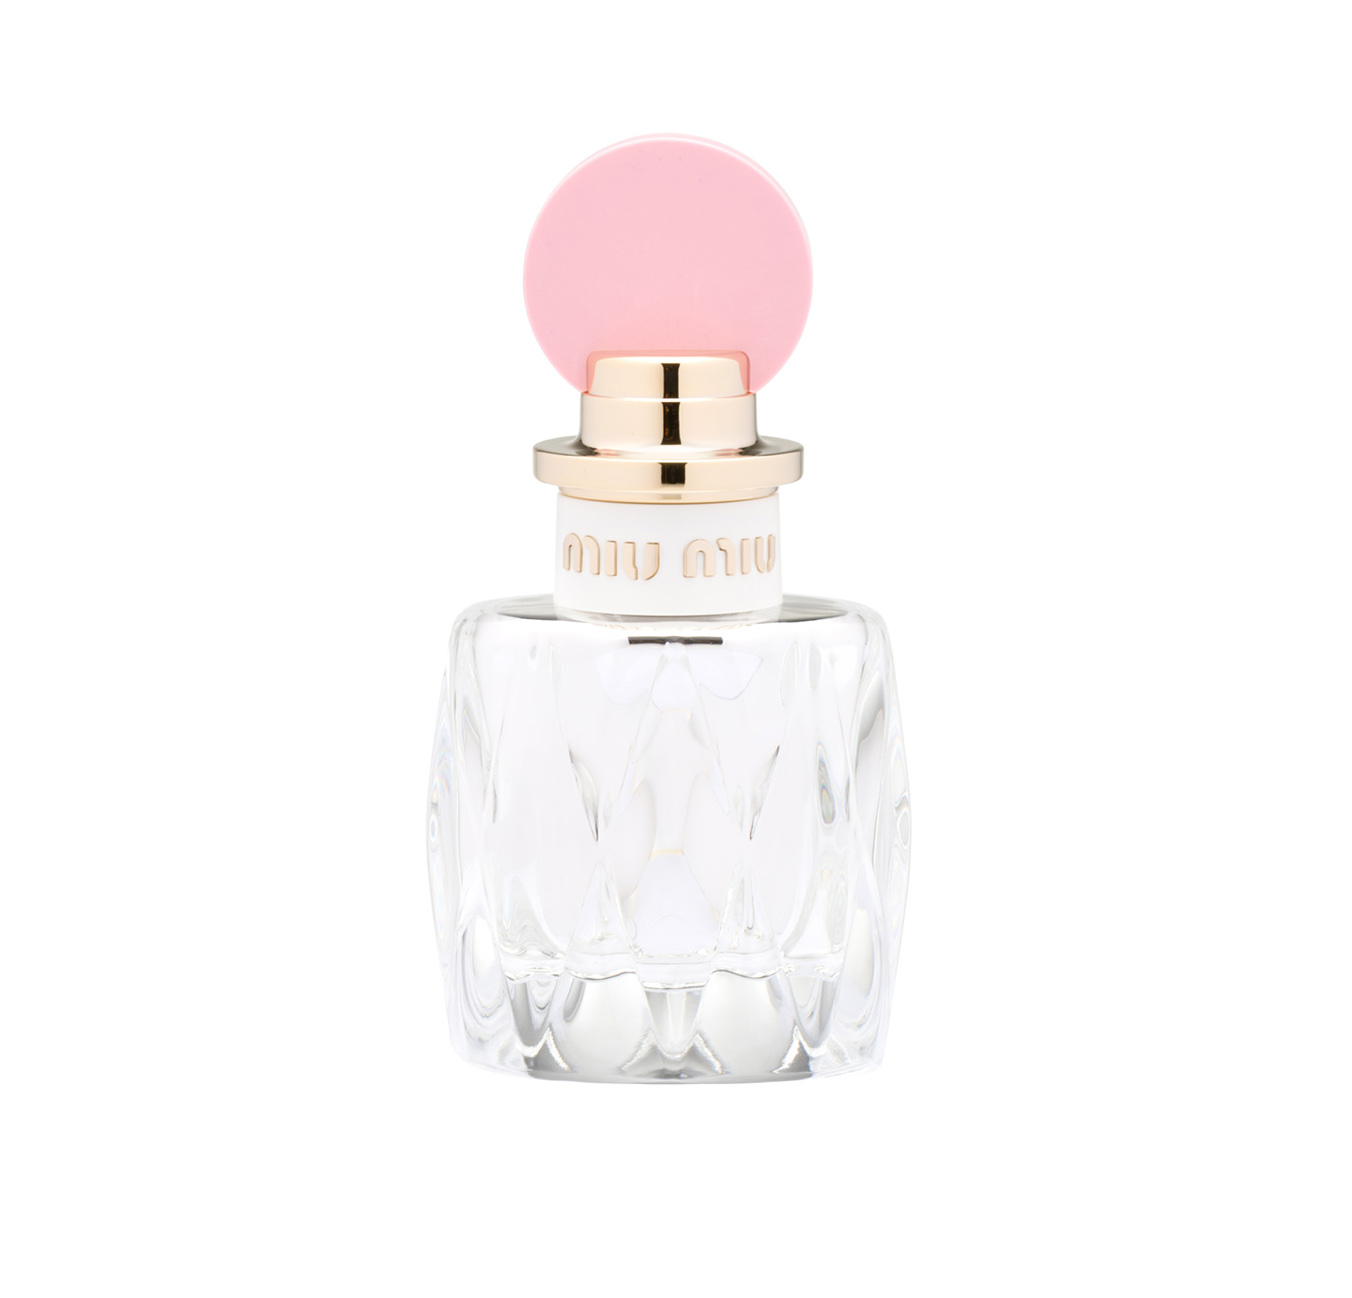 holiday gift guide fragrance- MiuMiu - Not your typical tuberose, rich musk envelopes the heady white flower like a chic winter coat your giftee will want to wear all season long. $99 for 1.7 oz, nordstrom.com